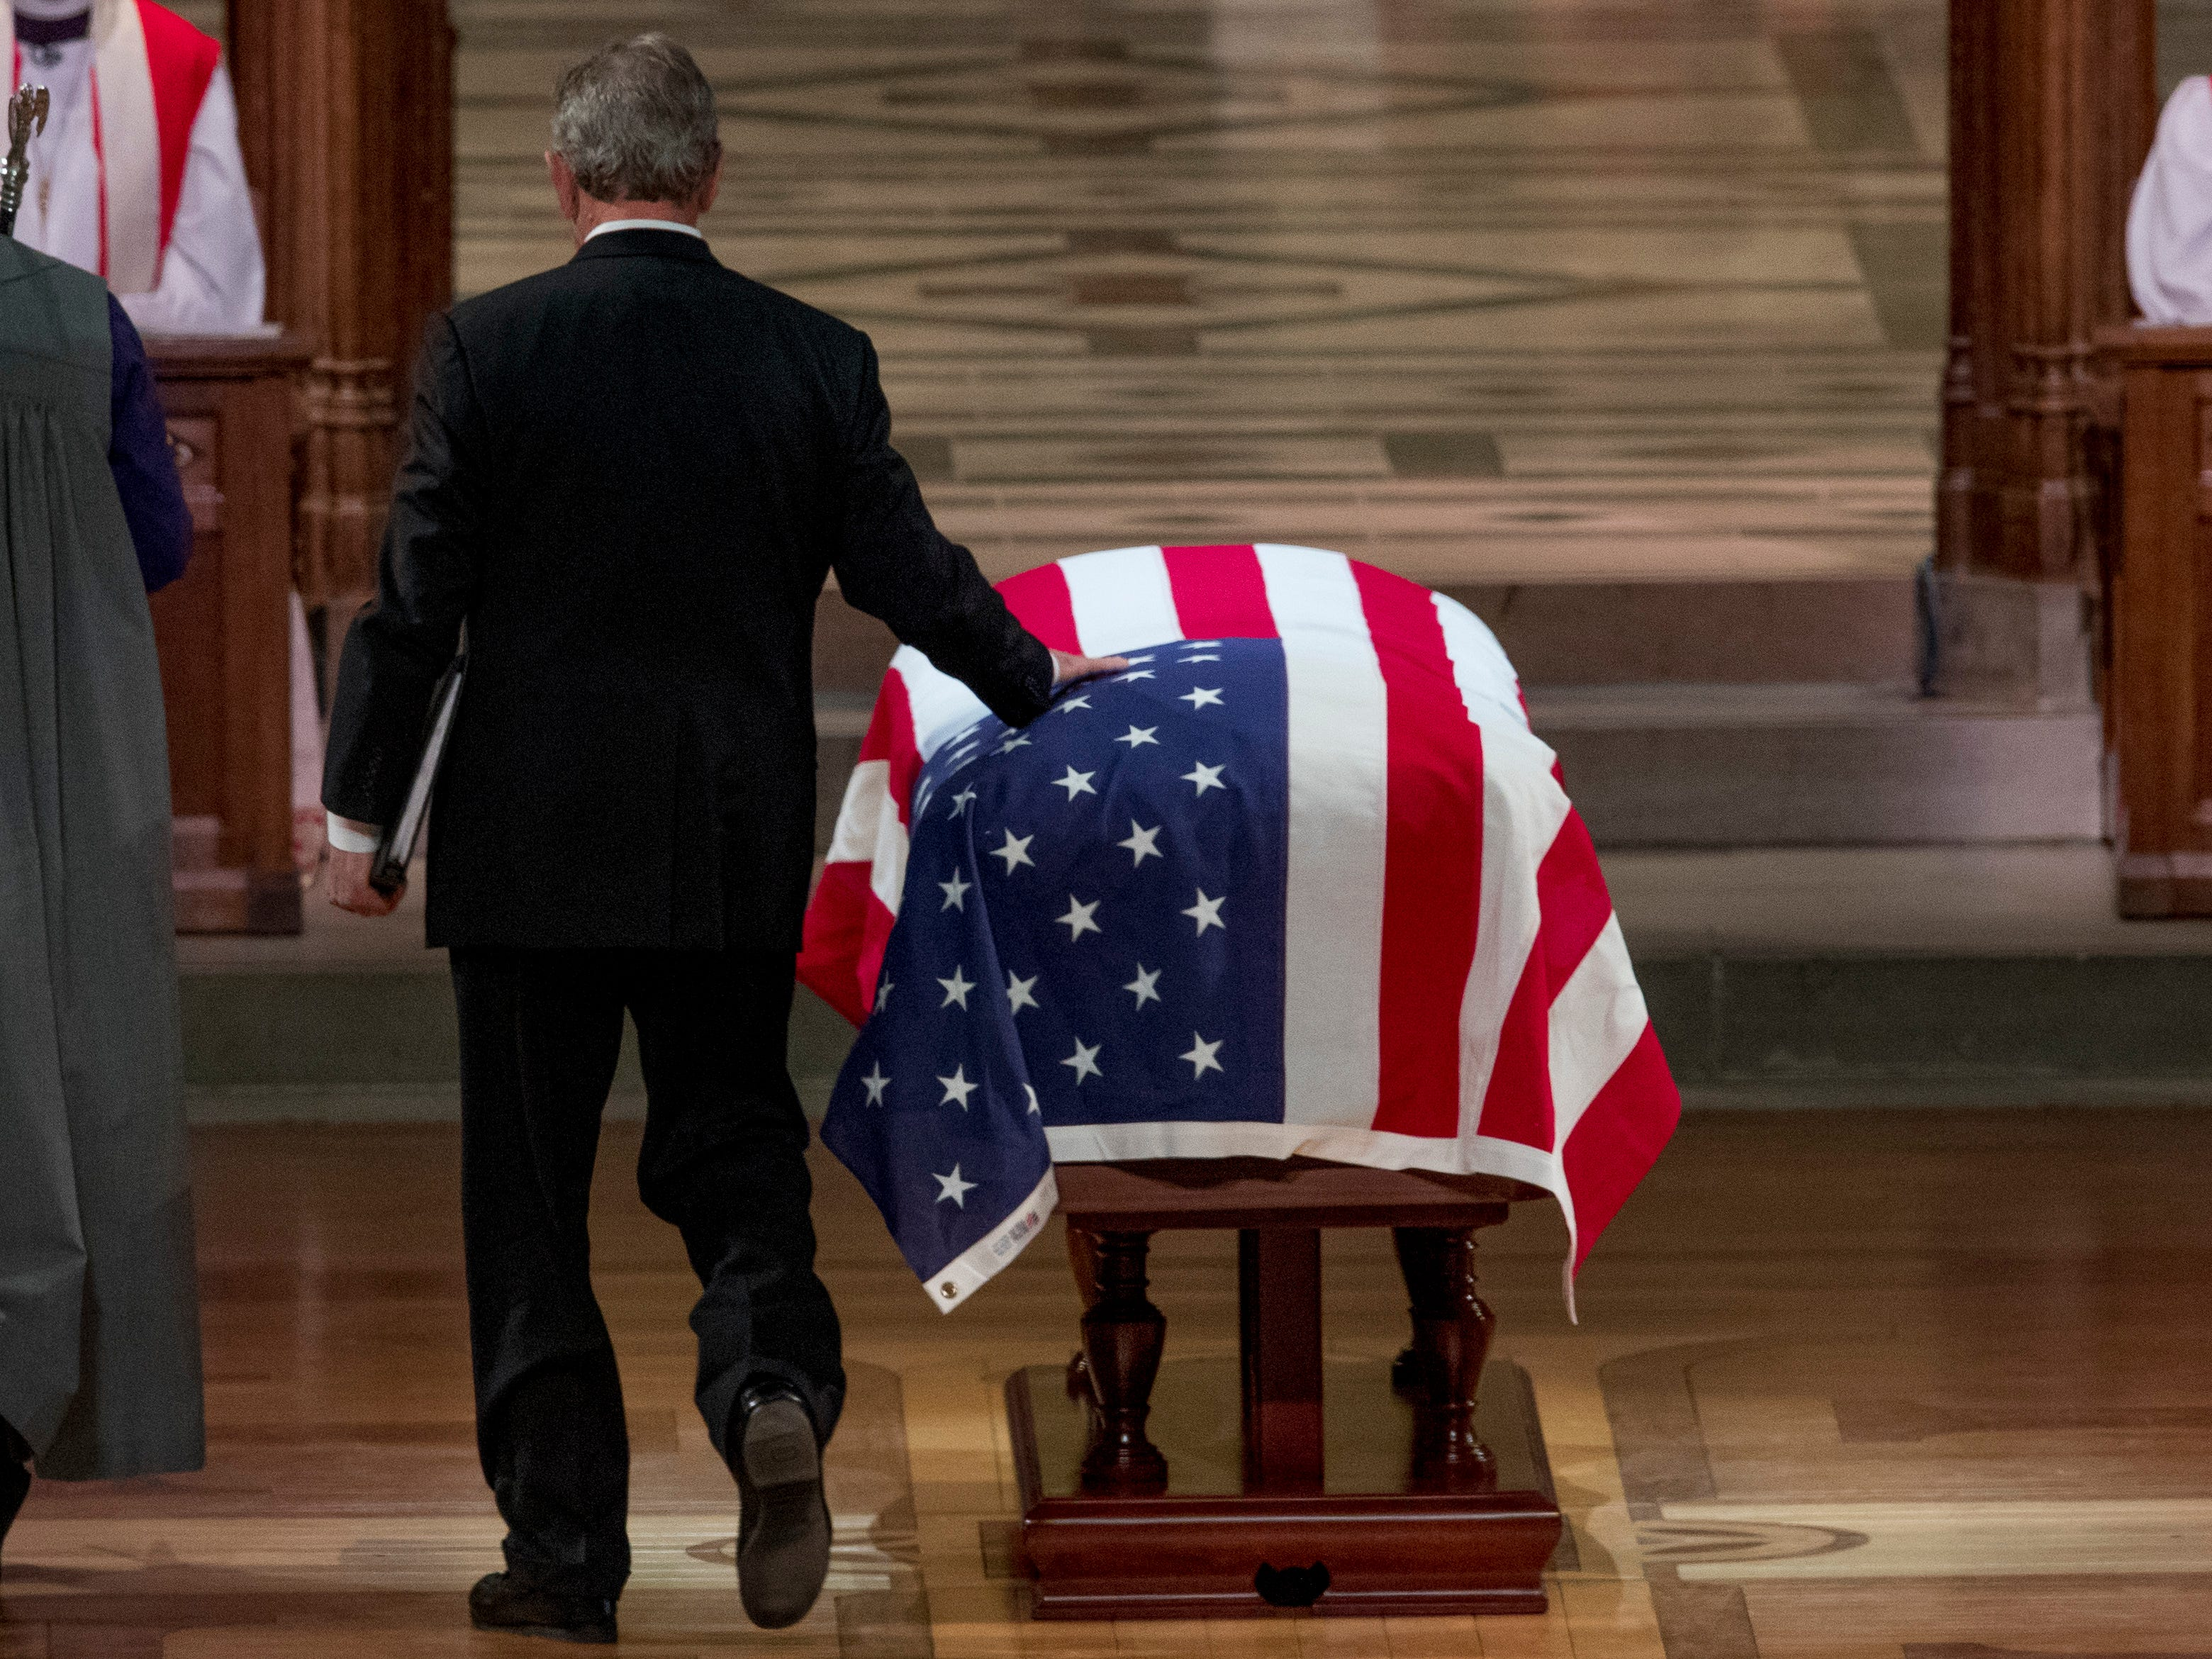 Former President George Bush touches the flag-draped casket of his father as he prepares to speak during the State Funeral at the National Cathedral.